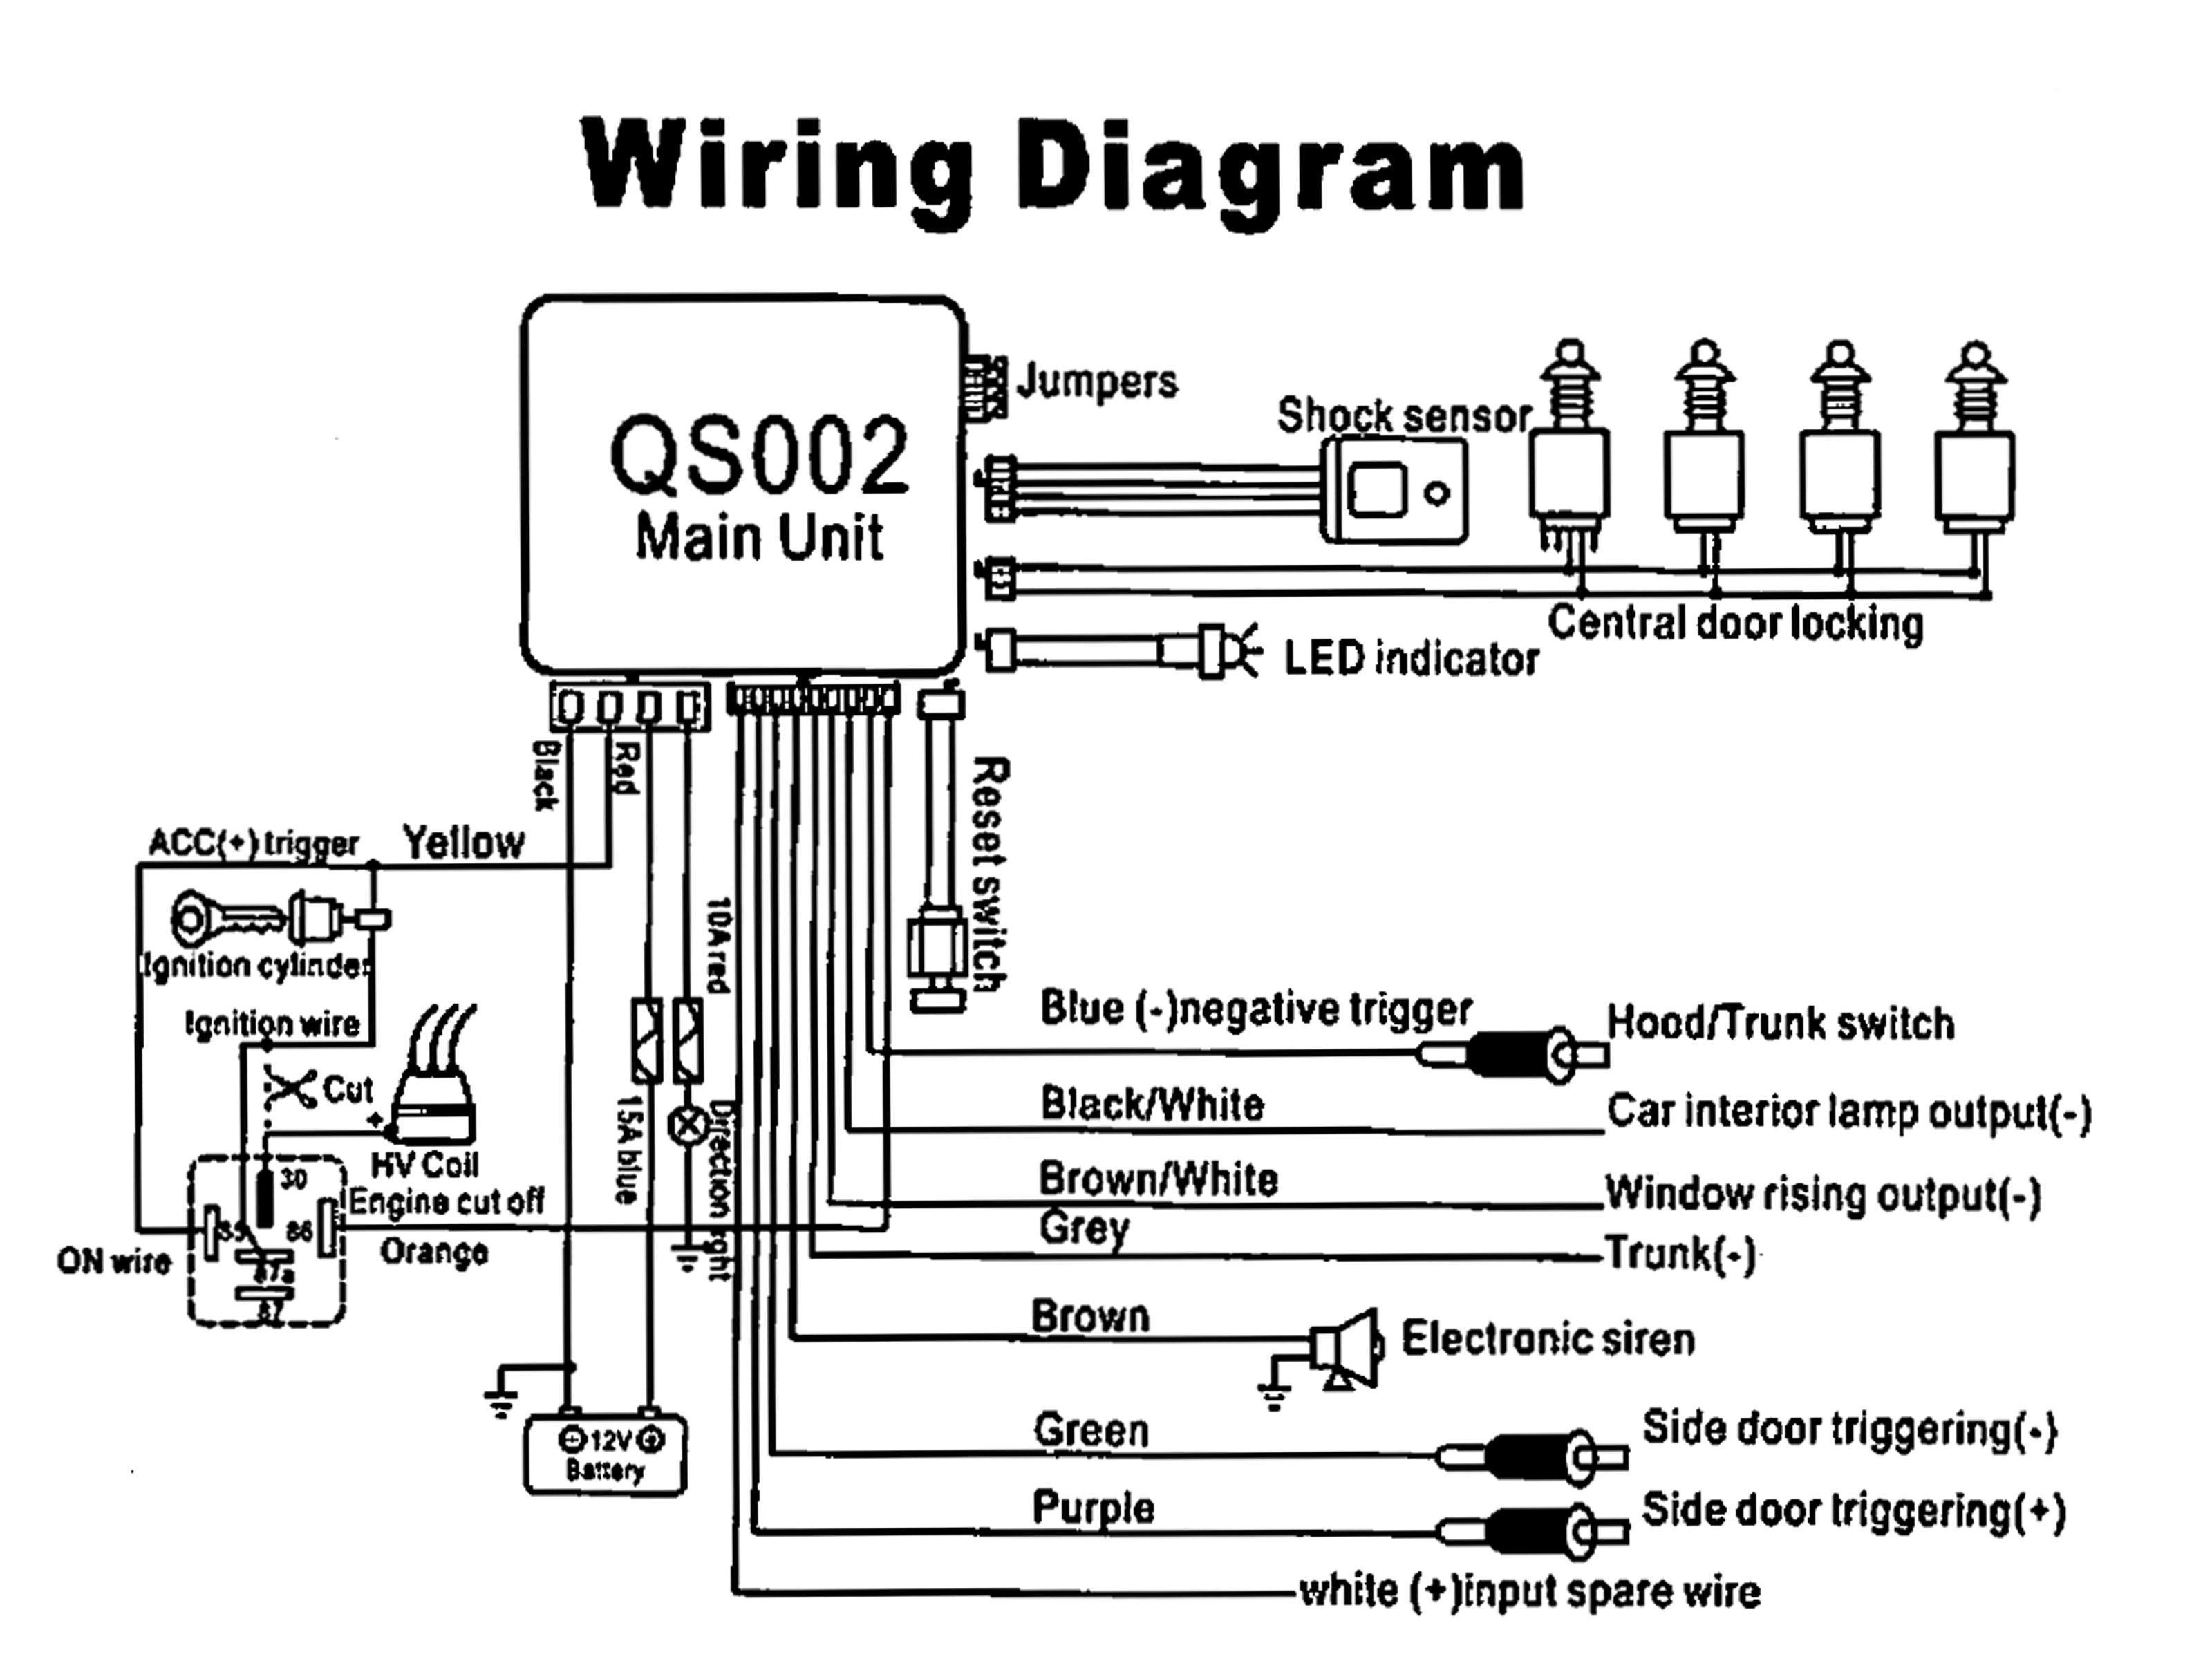 [SCHEMATICS_4ER]  DIAGRAM] Checkmate Car Alarm Wiring Diagram FULL Version HD Quality Wiring  Diagram - DIAGRAMSYS.UNICEFFLAUBERT.FR | Car Alarm Wiring Diagram Pdf |  | Diagram Database